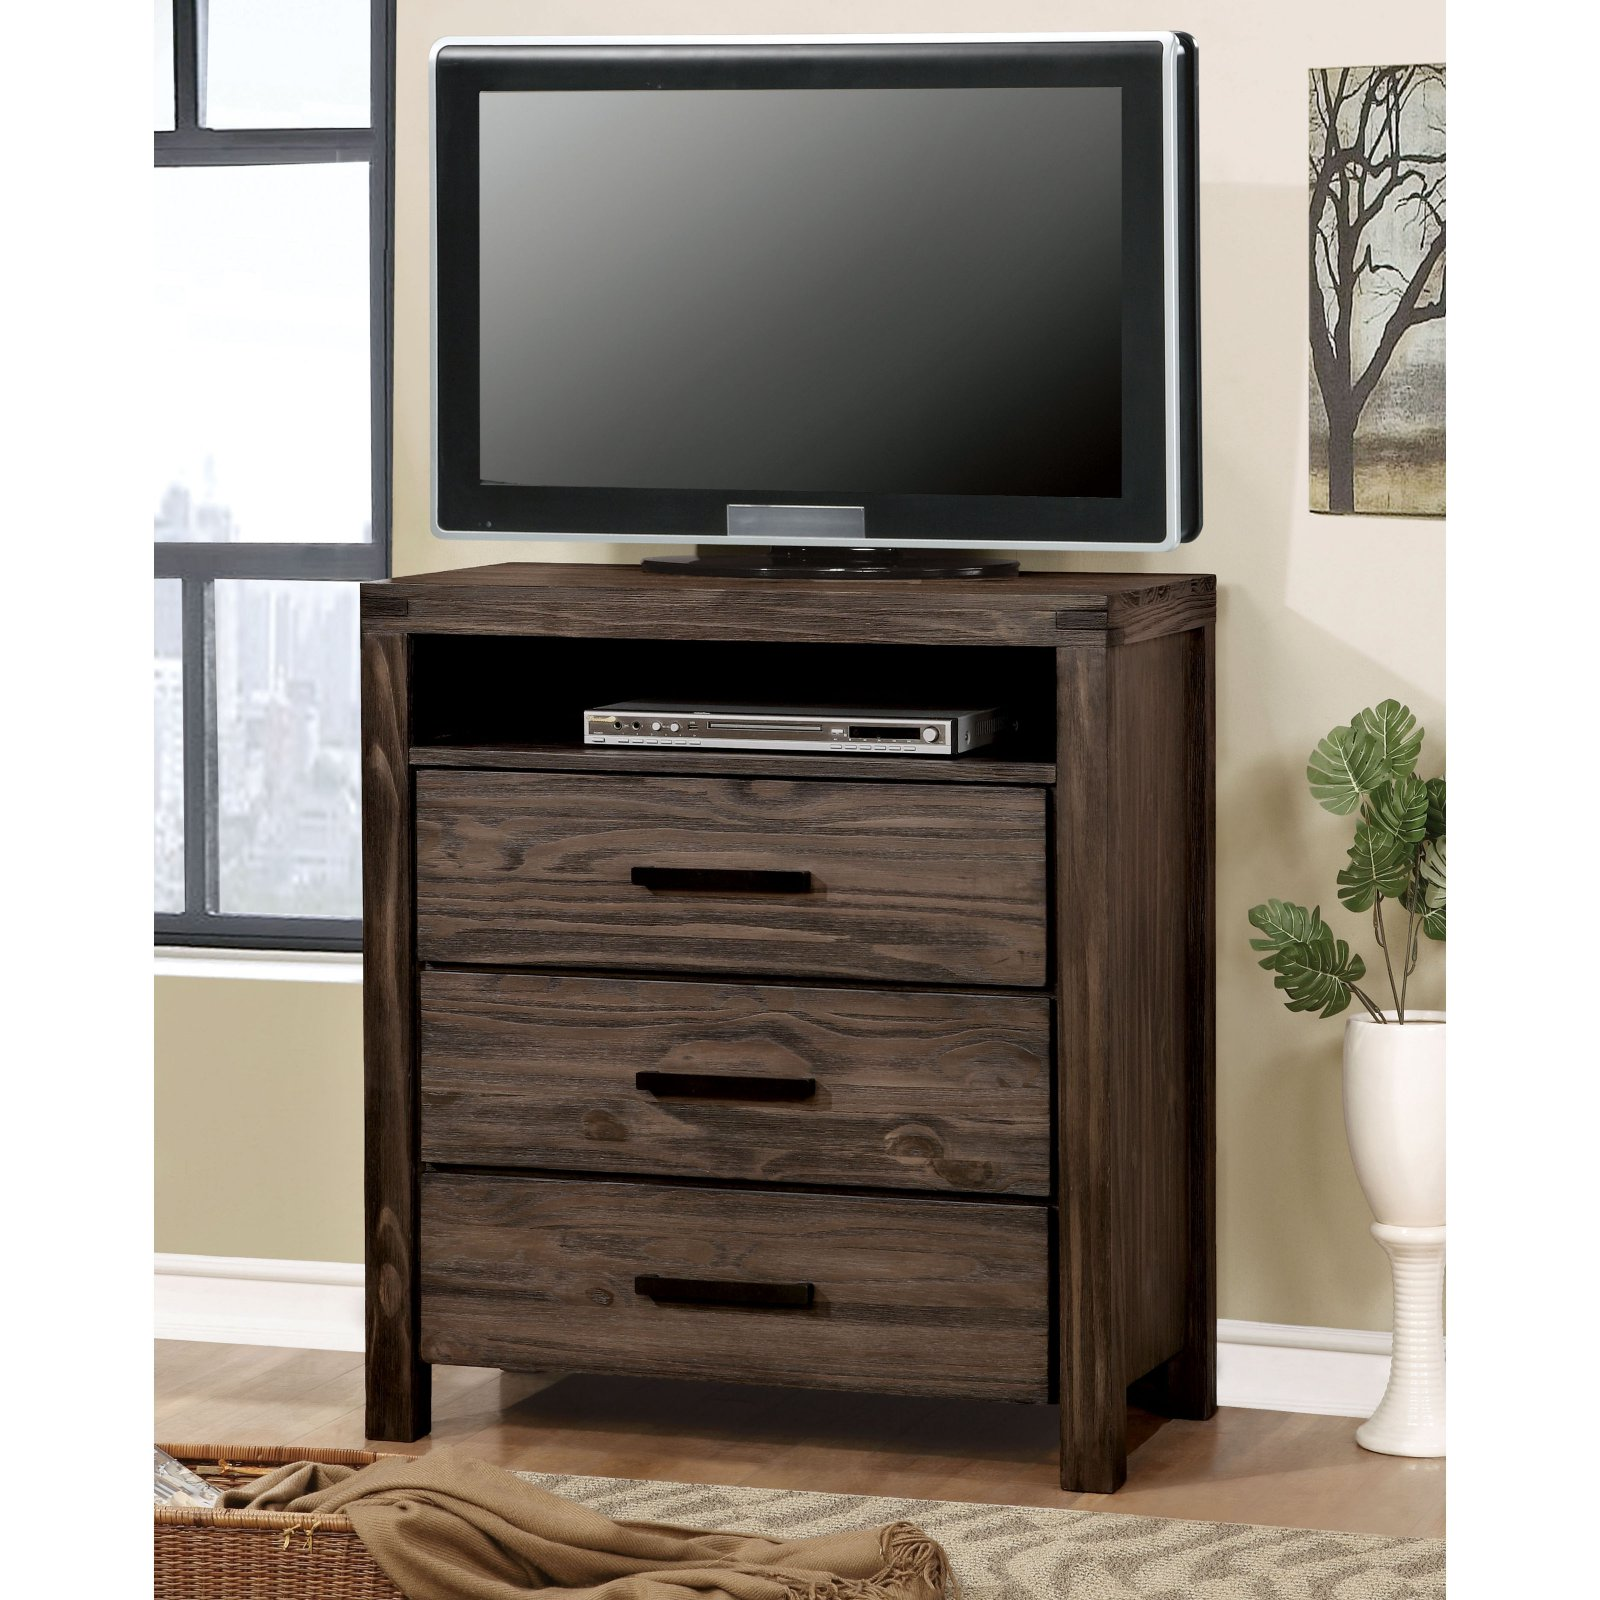 Furniture of America Wiley Rustic 3 Drawer Media Chest